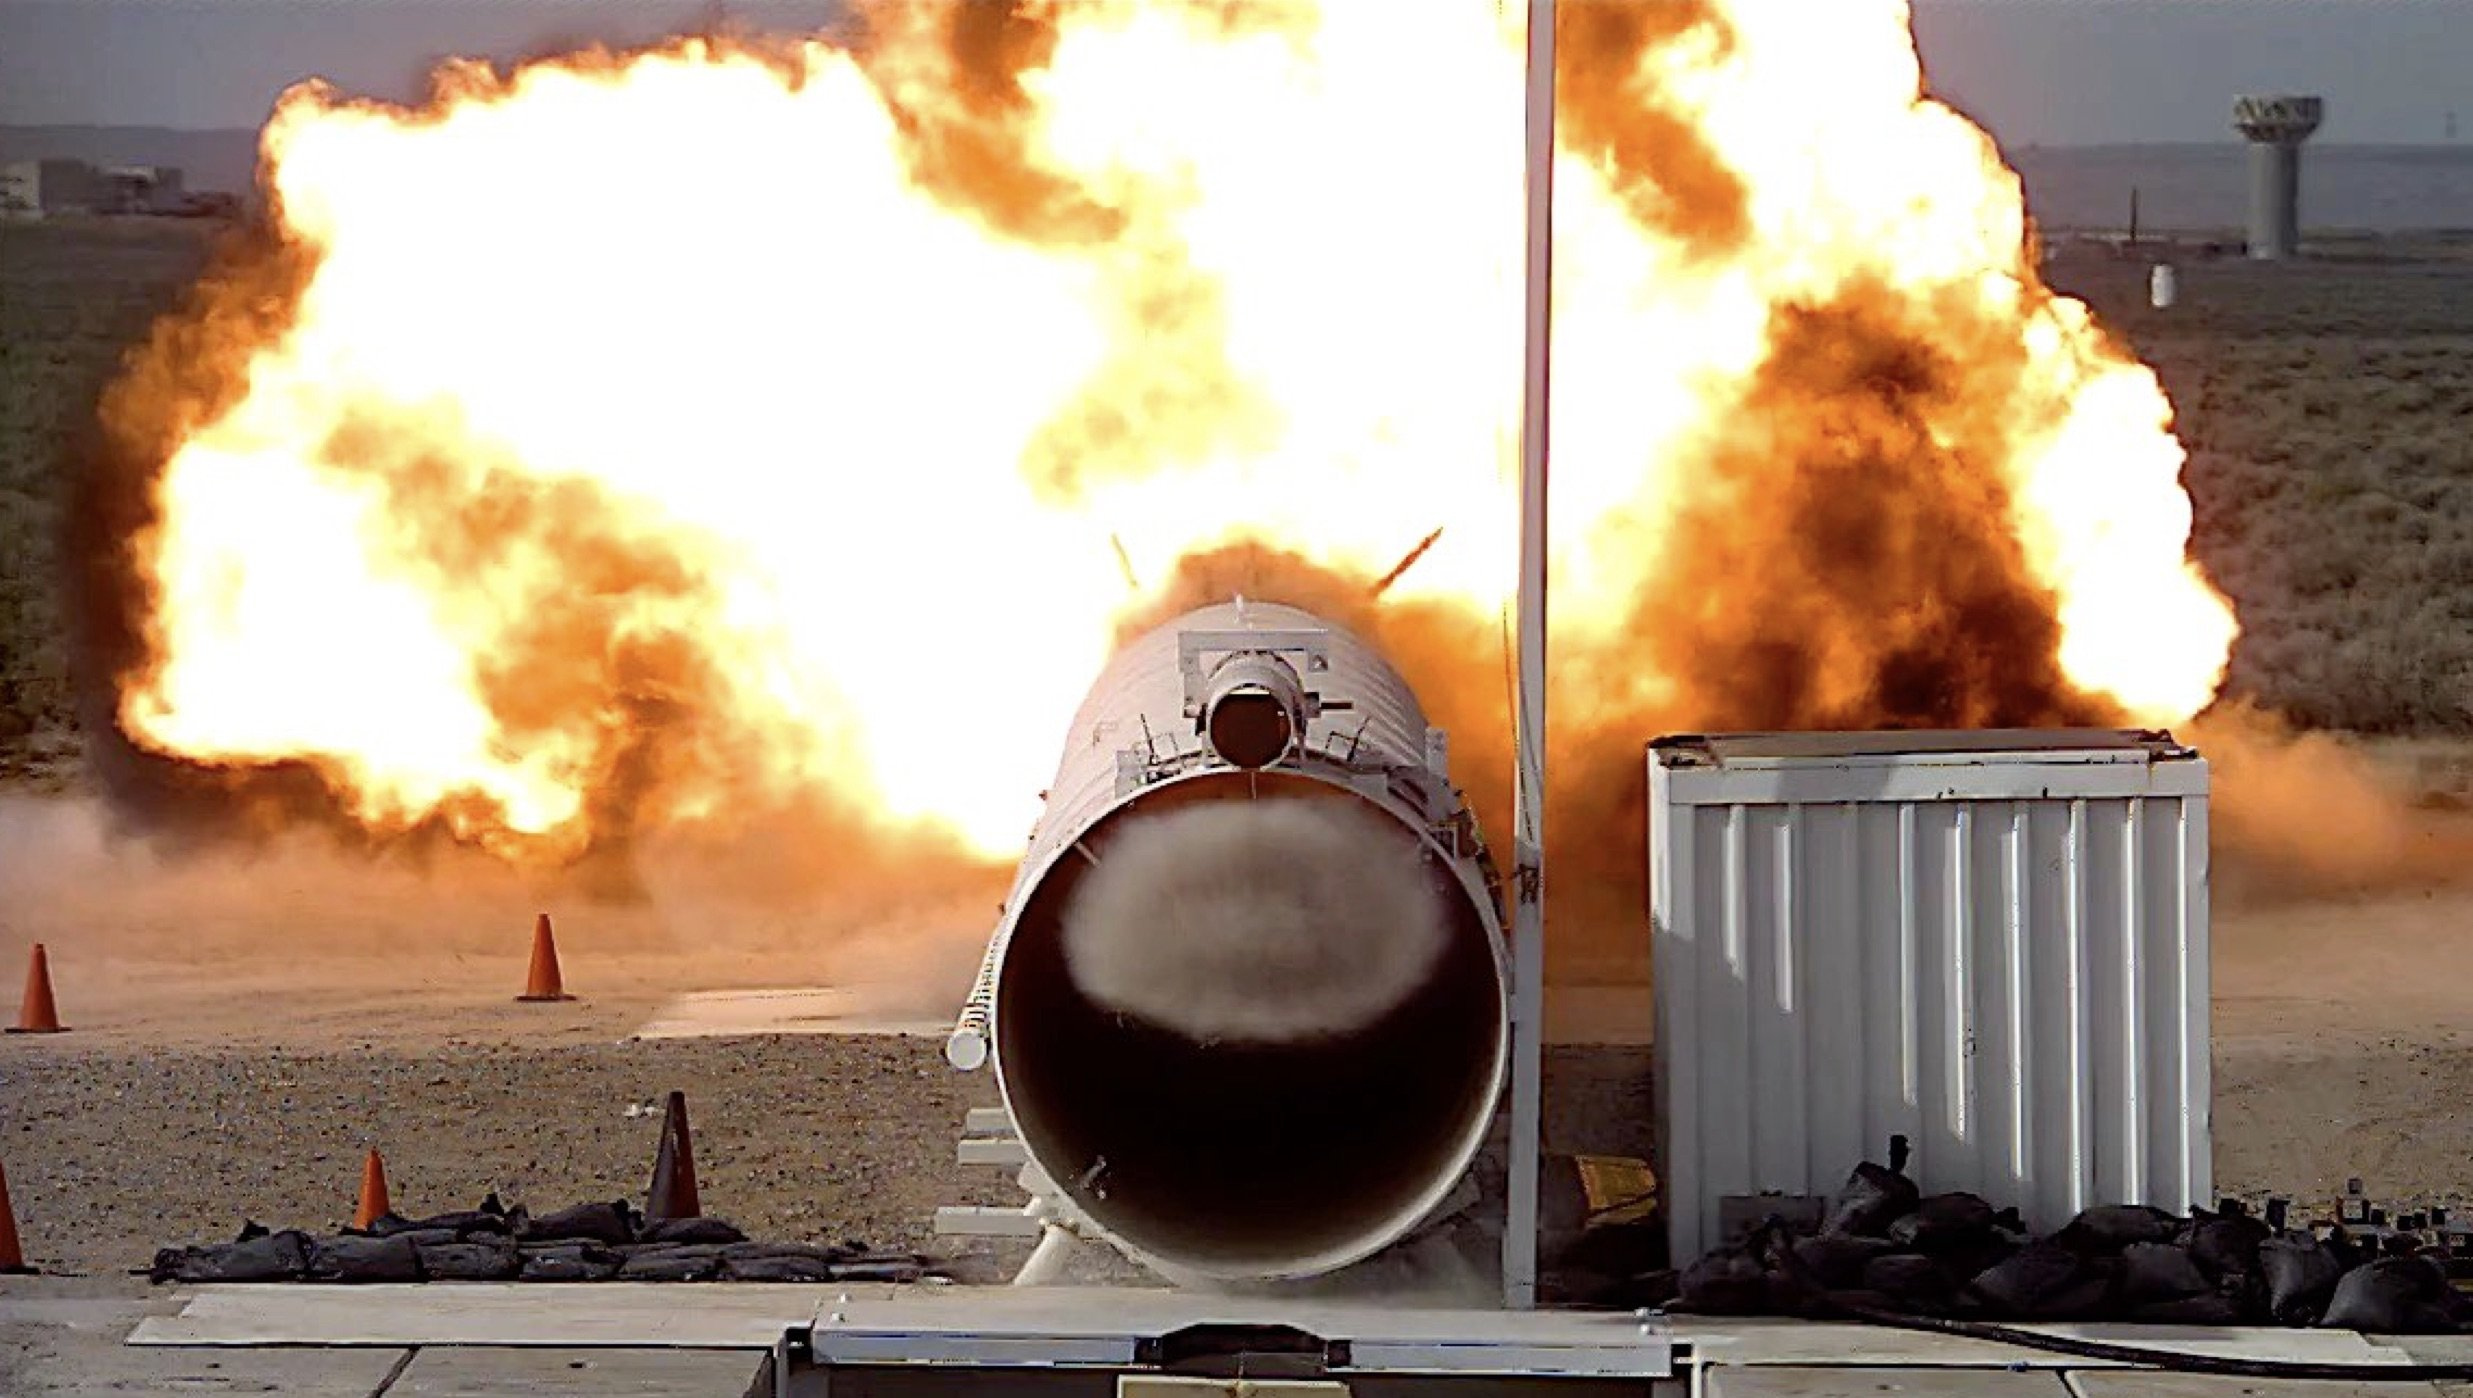 Blast tube tests at Sandia simulate shock wave conditions nuclear weapons could face